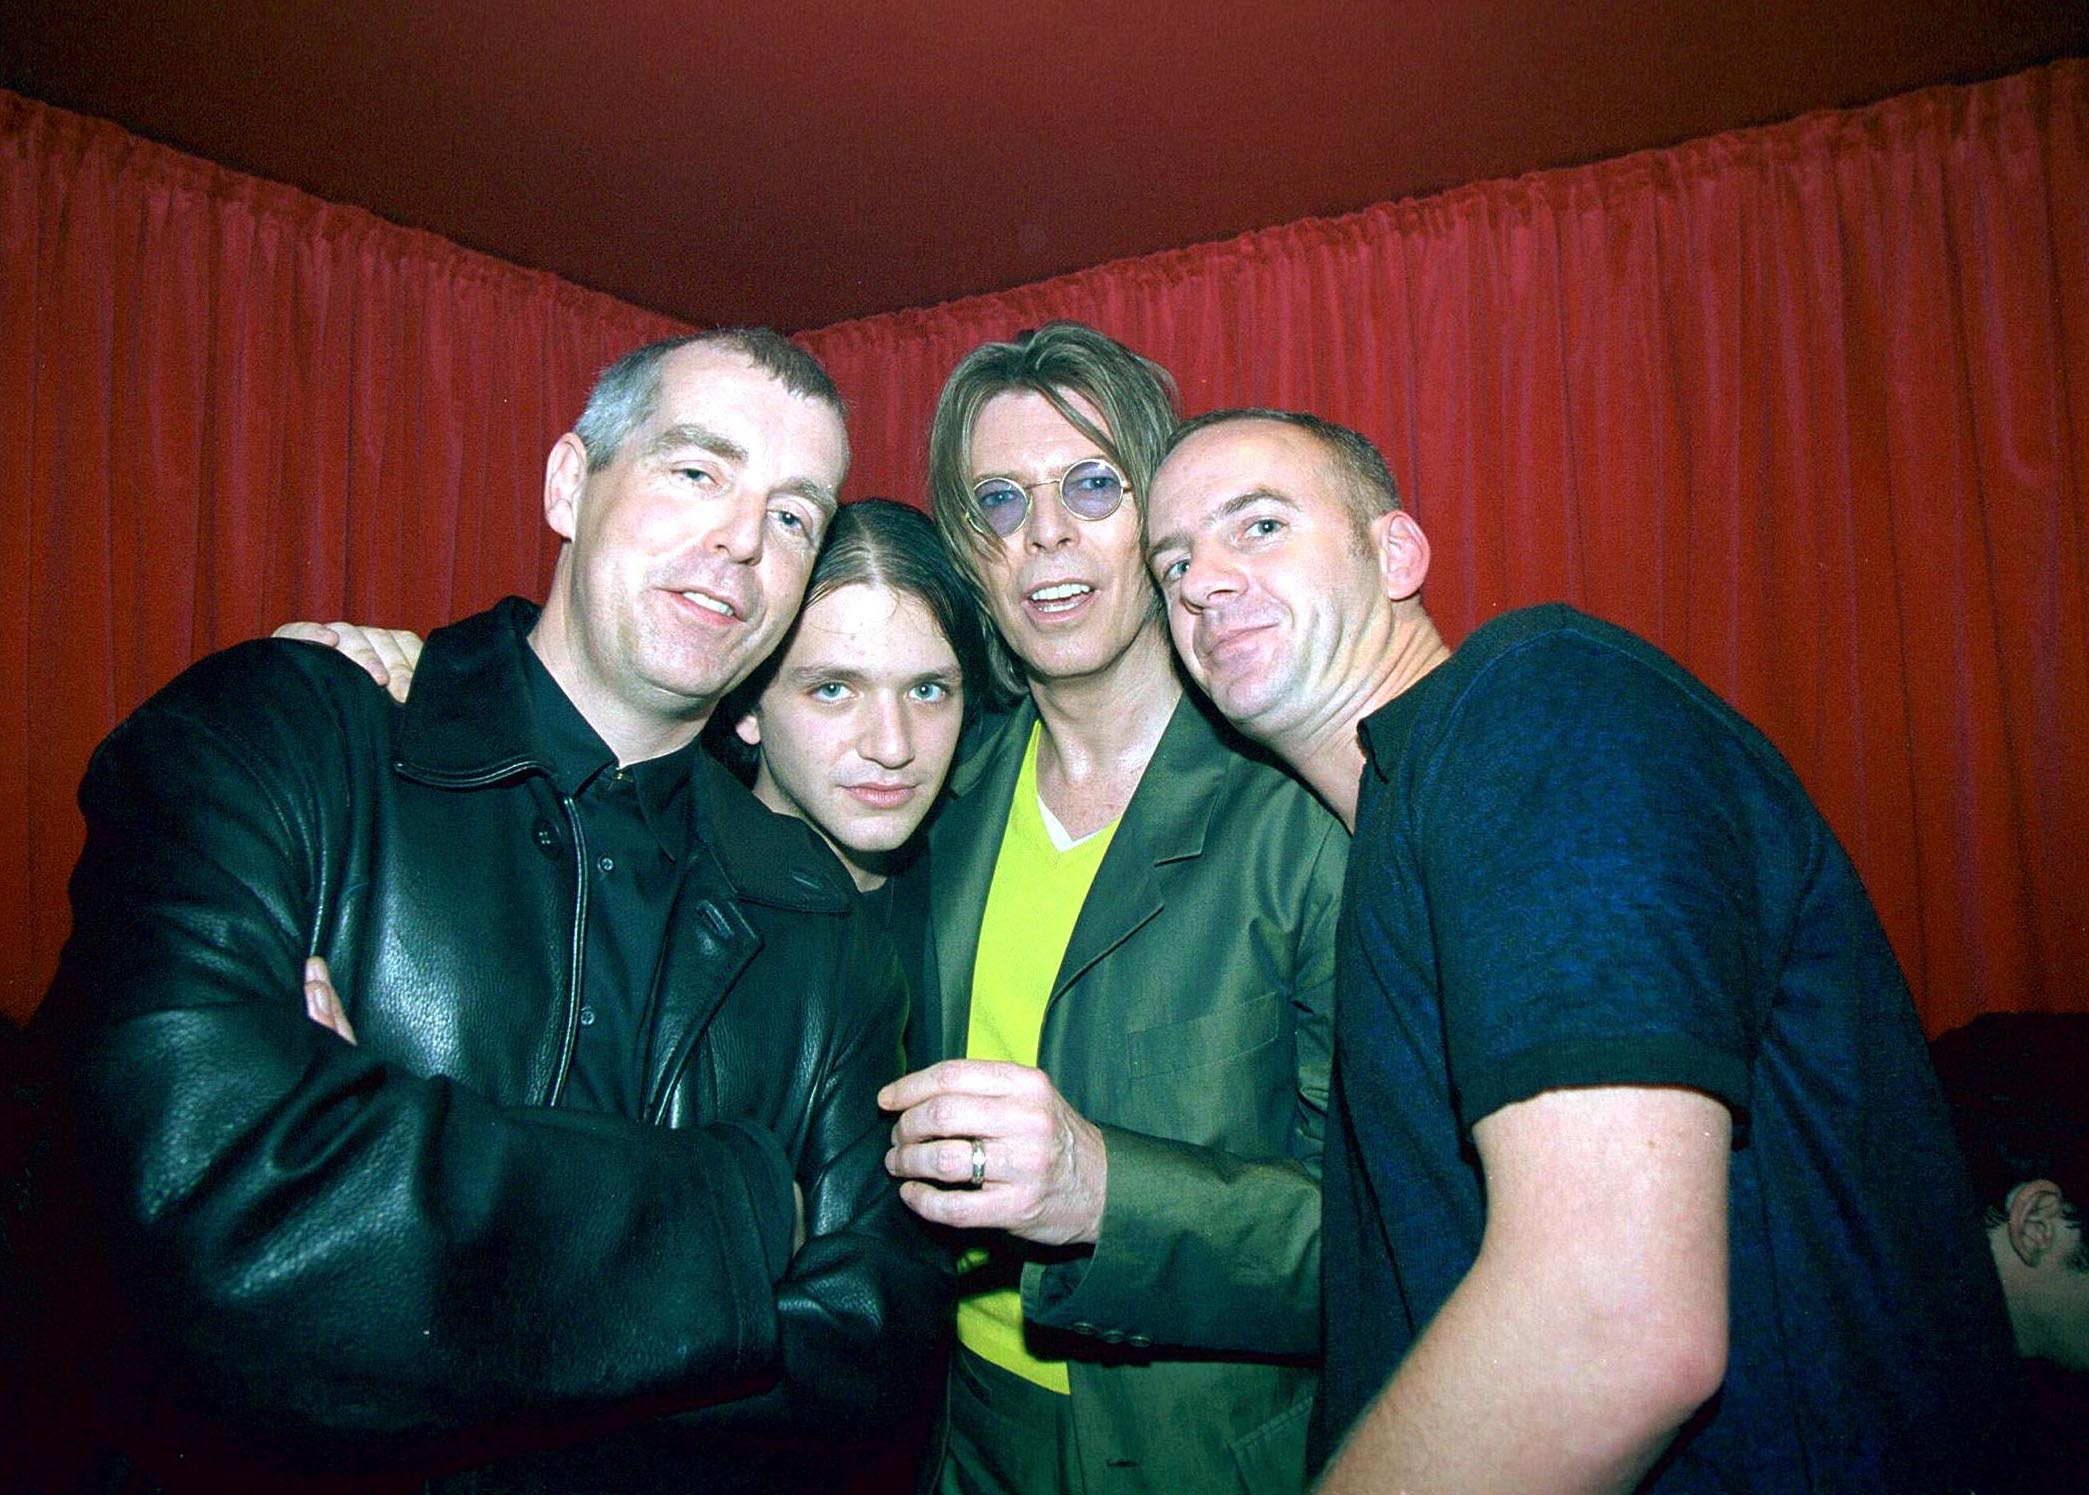 Neil Tennant, Brian Molko (Placebo), David Bowie And Norman Cook (Fatboy Slim)